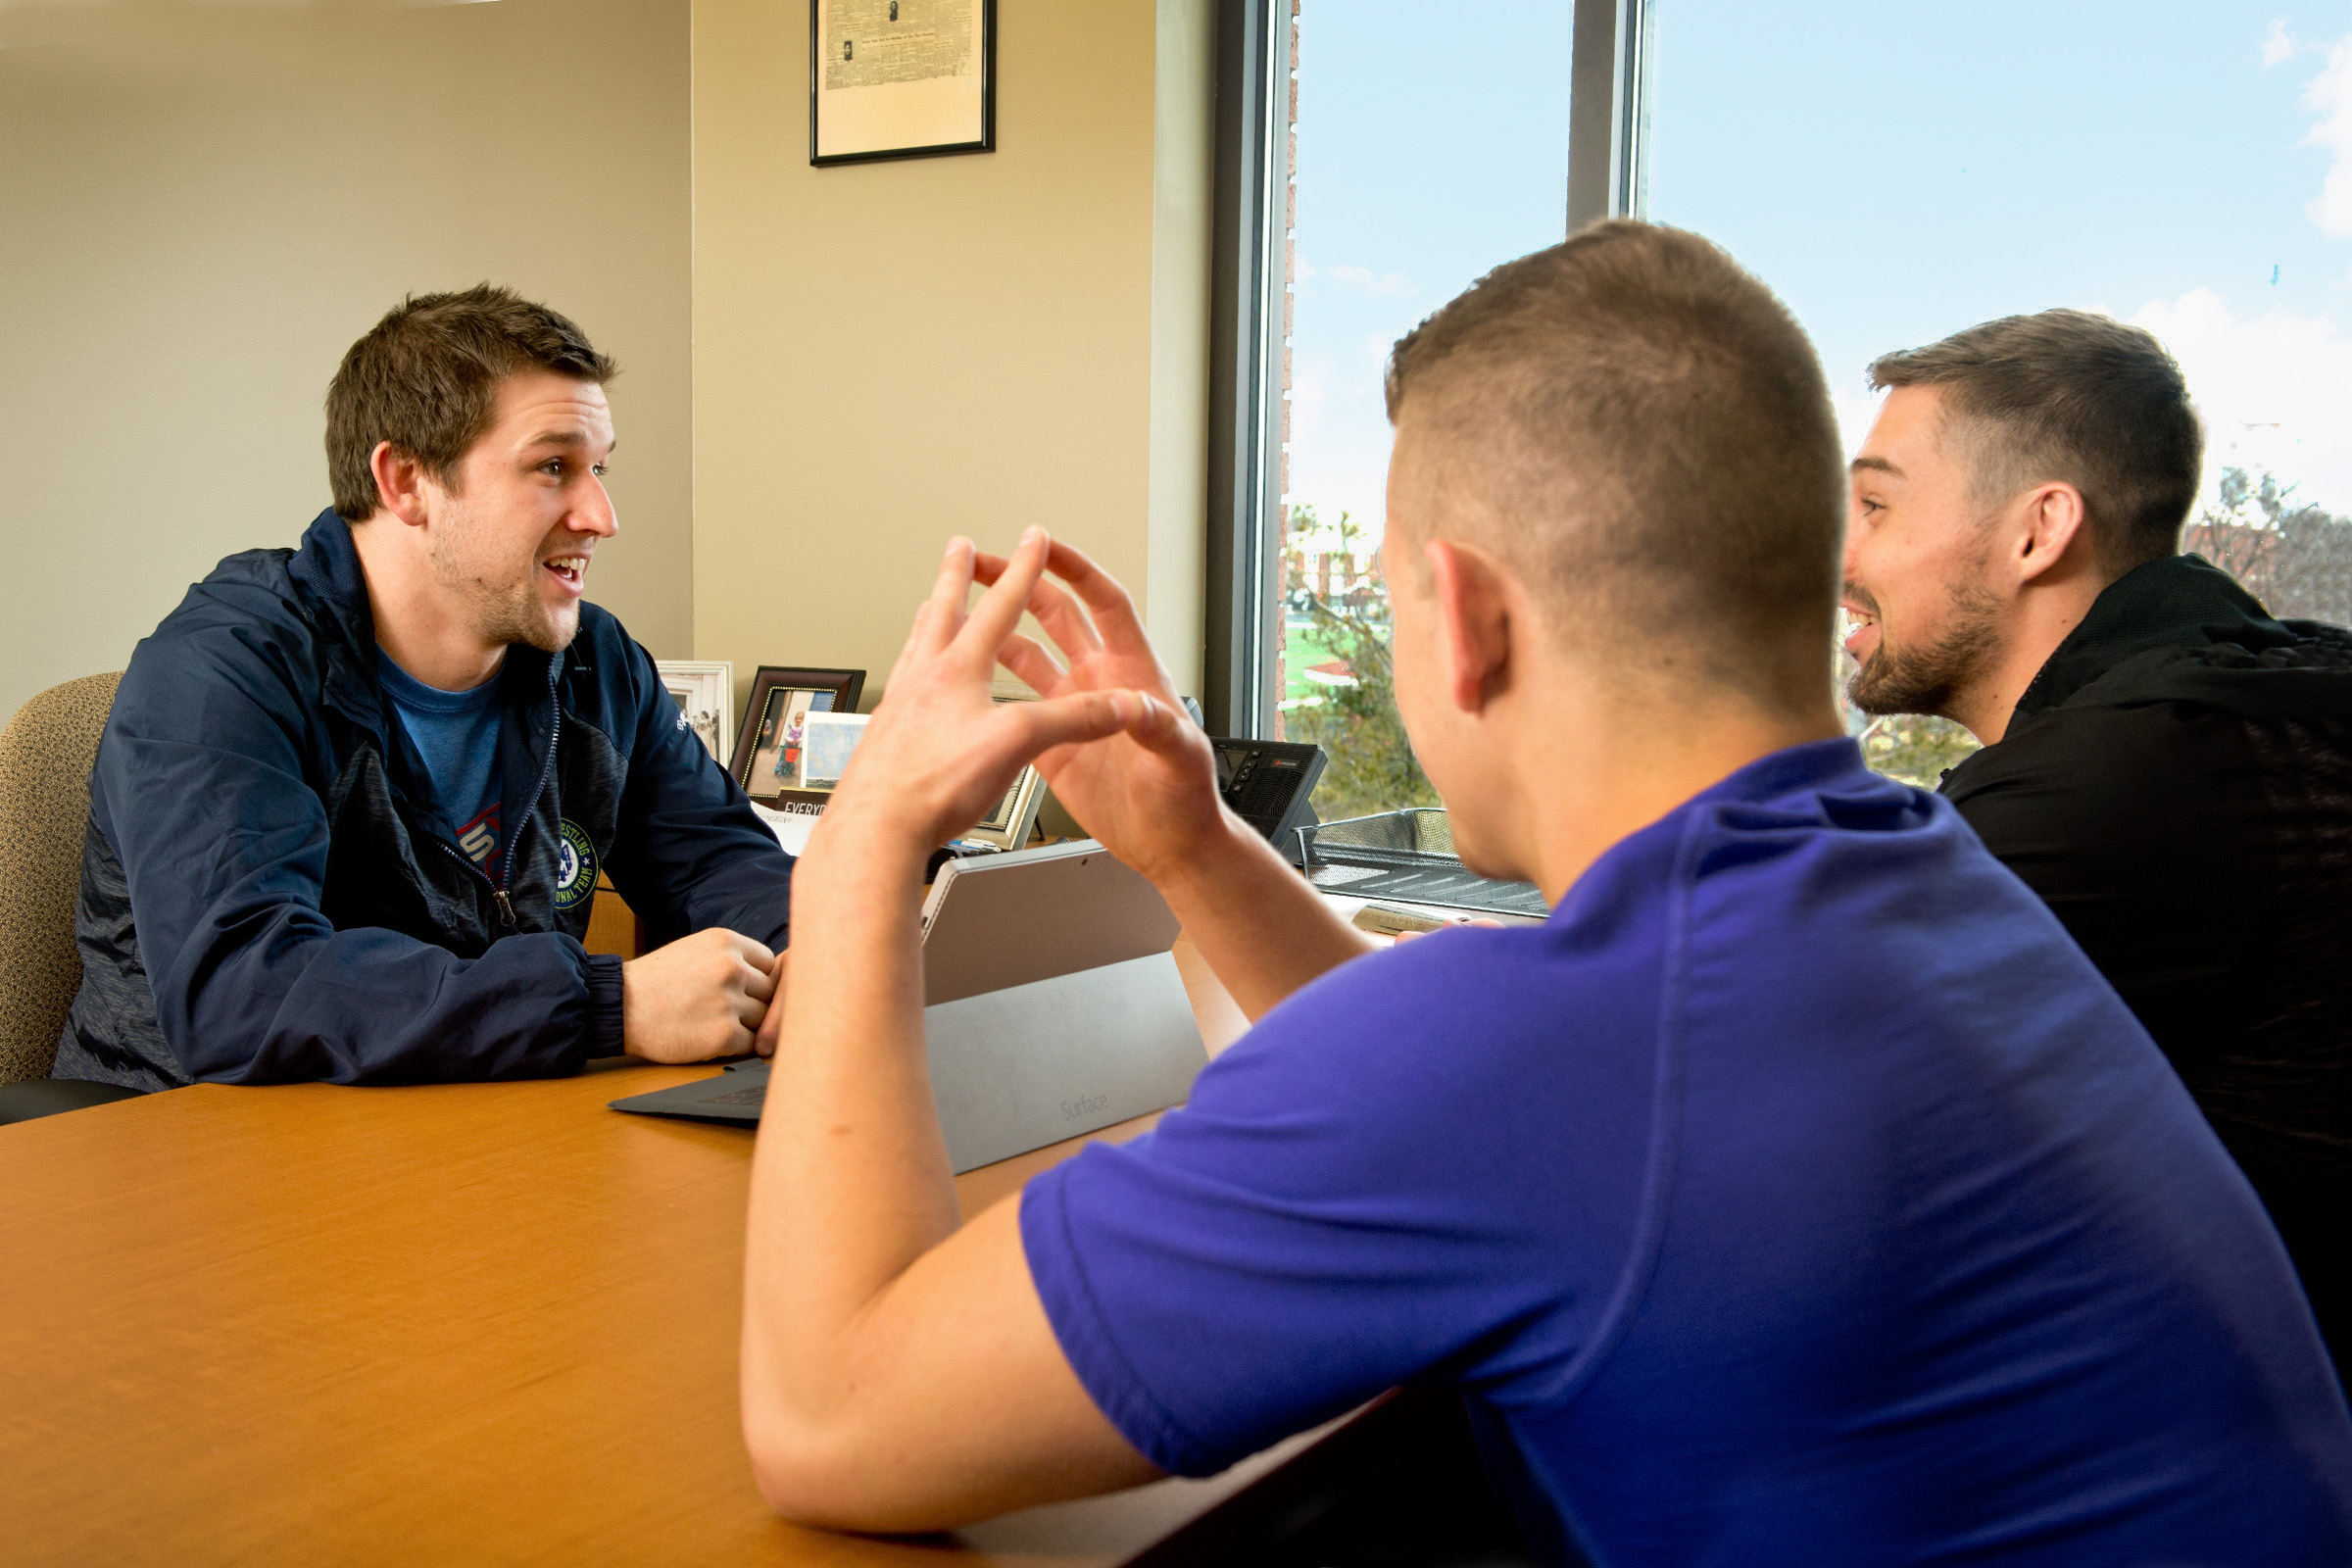 Wrestling coach meeting with athletes in his office.